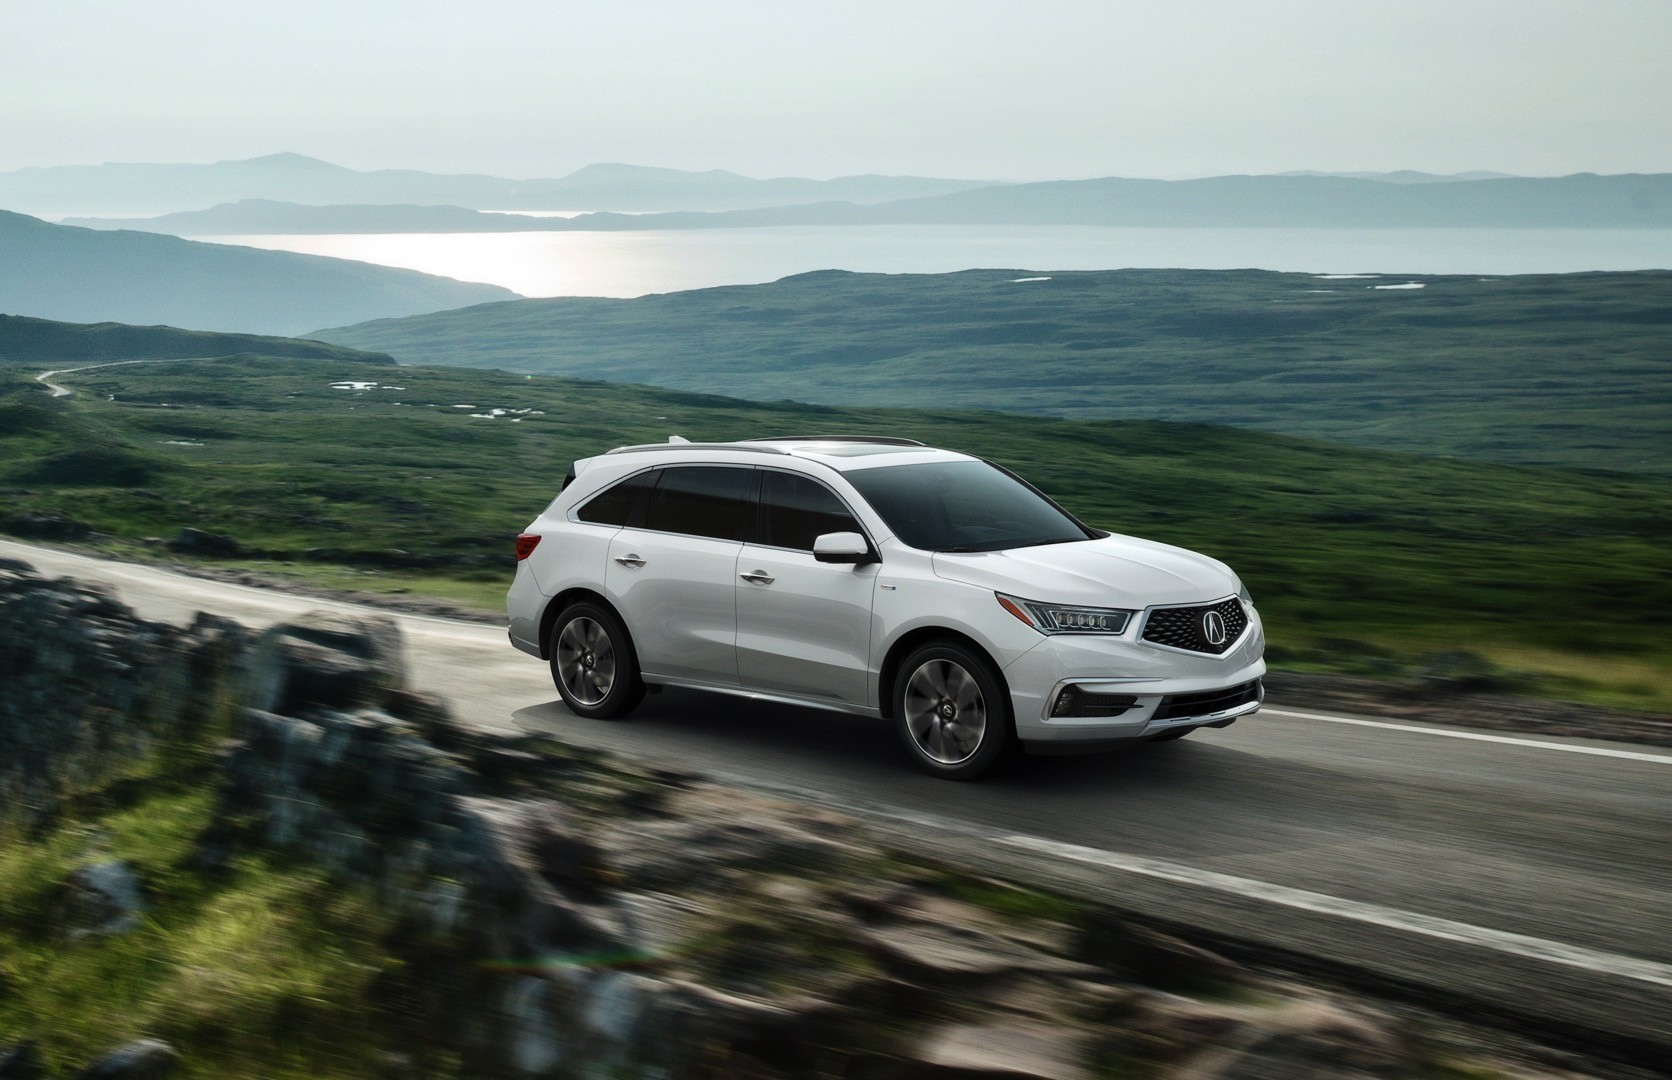 acura prices mdx sport hybrid from 51 960 arrives at u s dealers in april autoevolution. Black Bedroom Furniture Sets. Home Design Ideas